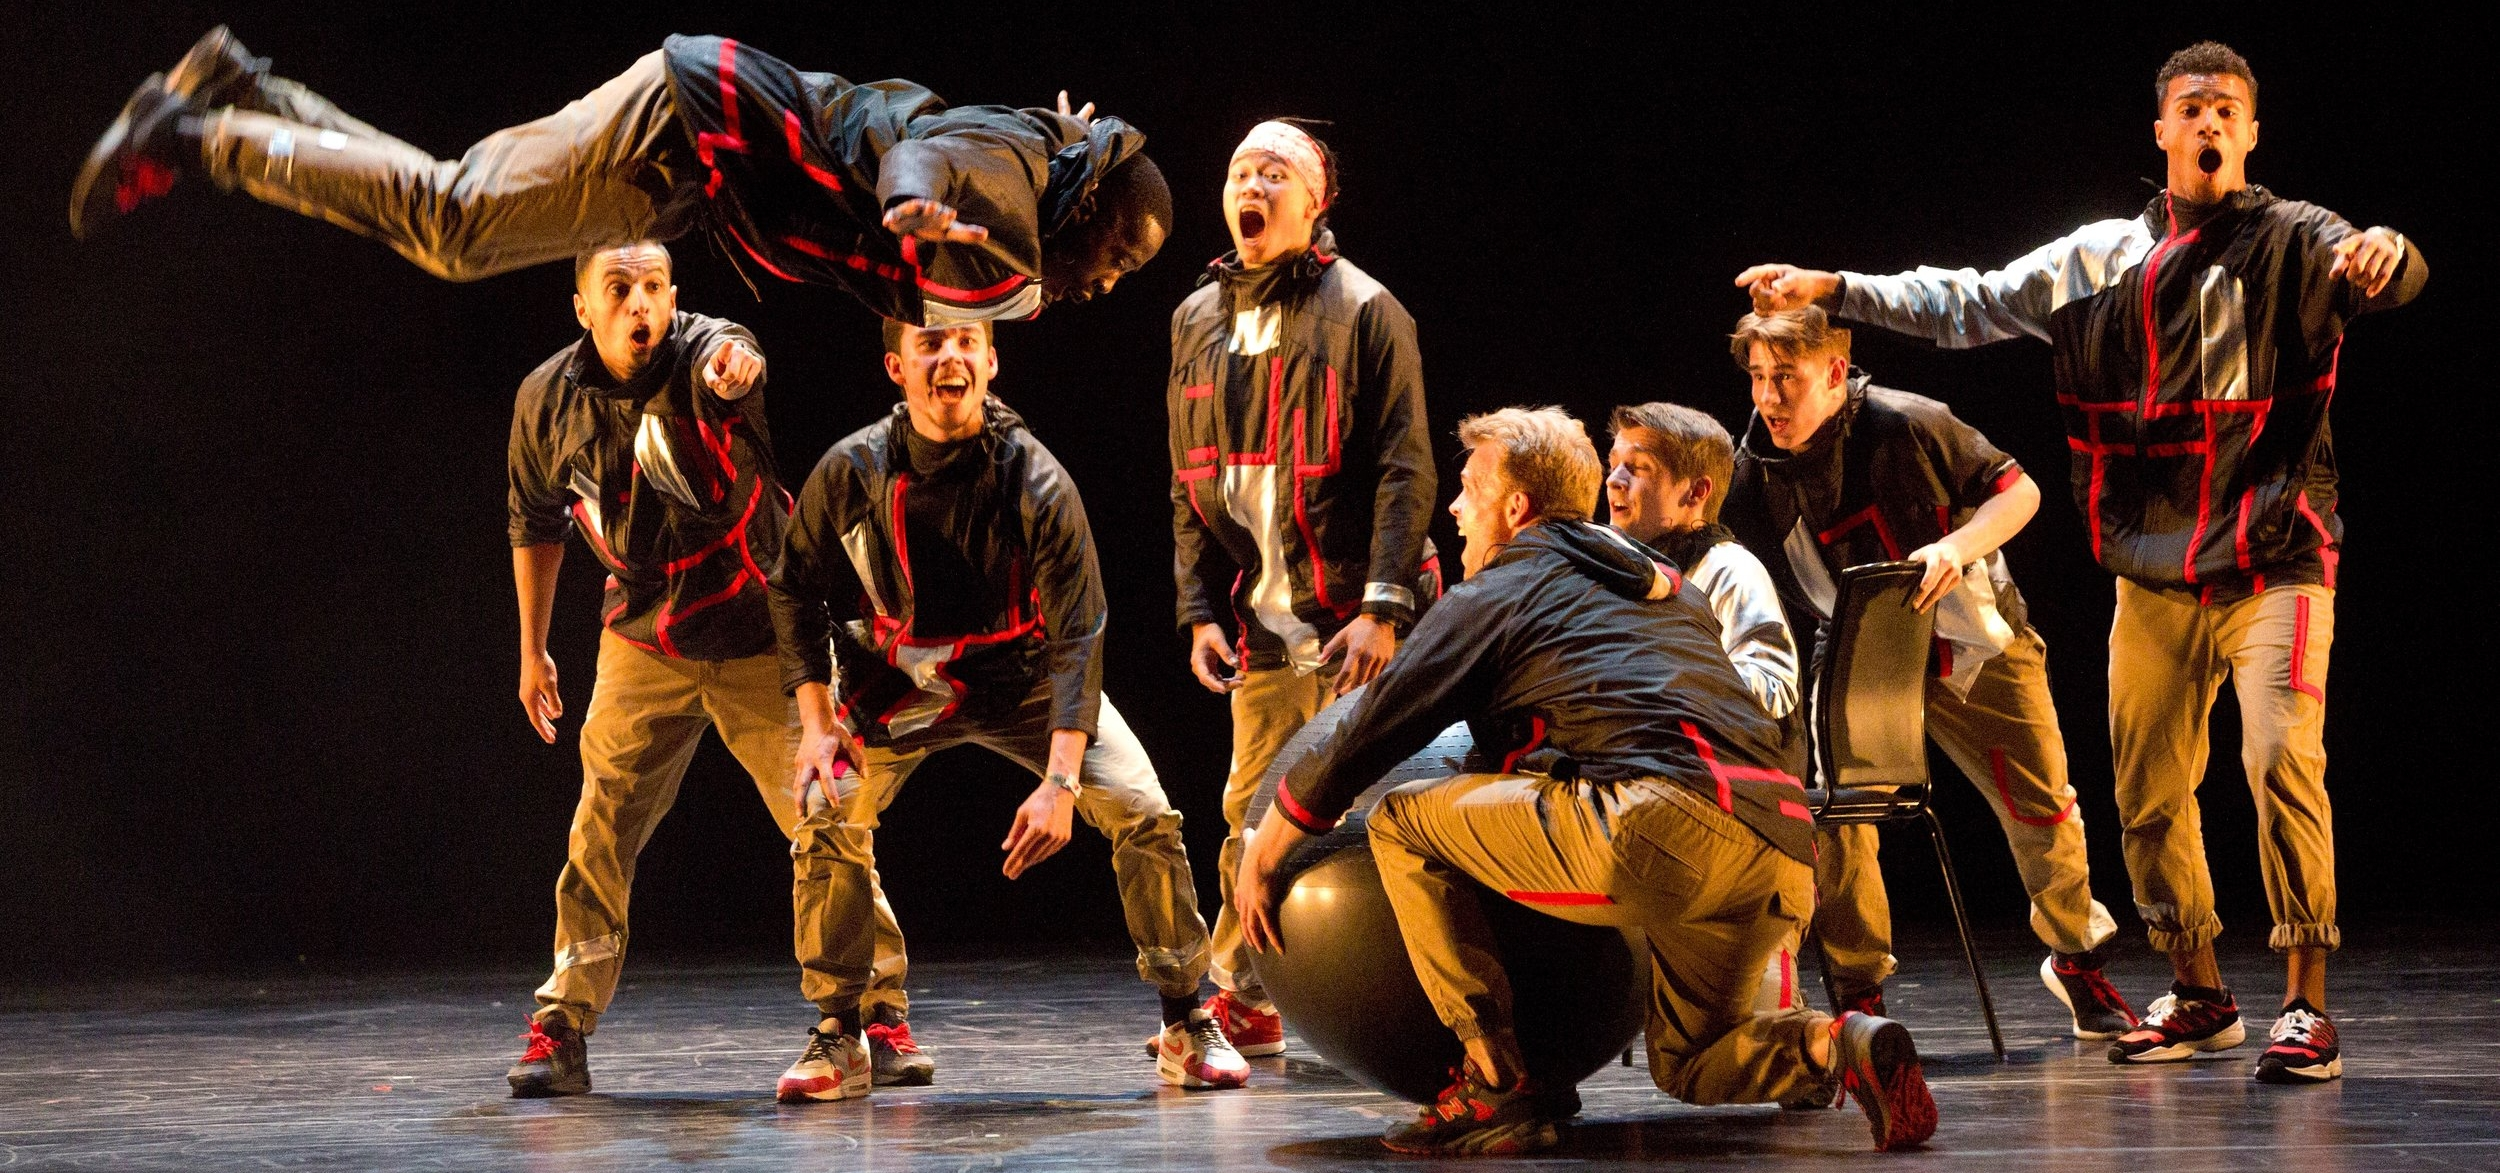 Want to perform at Breakin' Convention - Here's what you need to know...